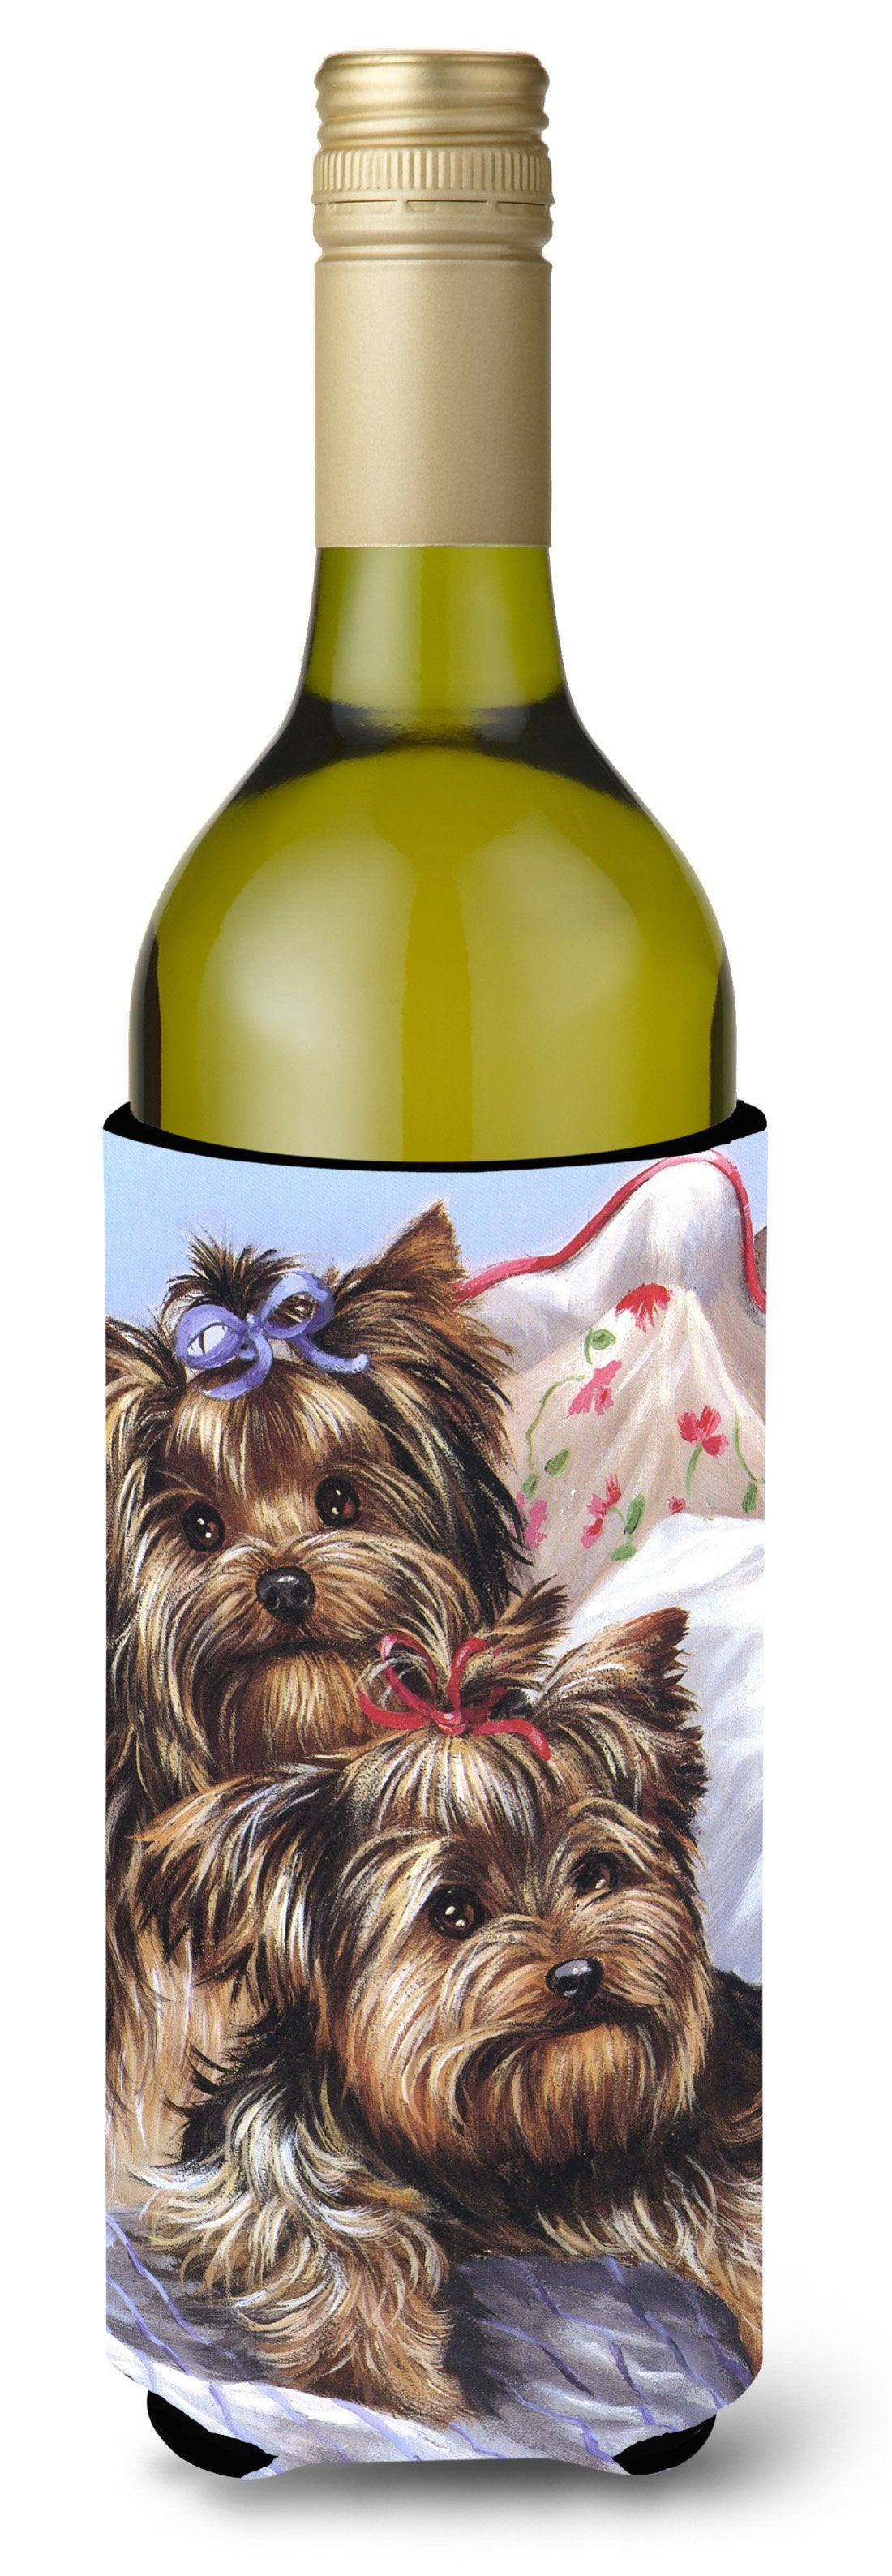 Yorkie Bed Bugs Wine Bottle Hugger PPP3240LITERK by Caroline's Treasures